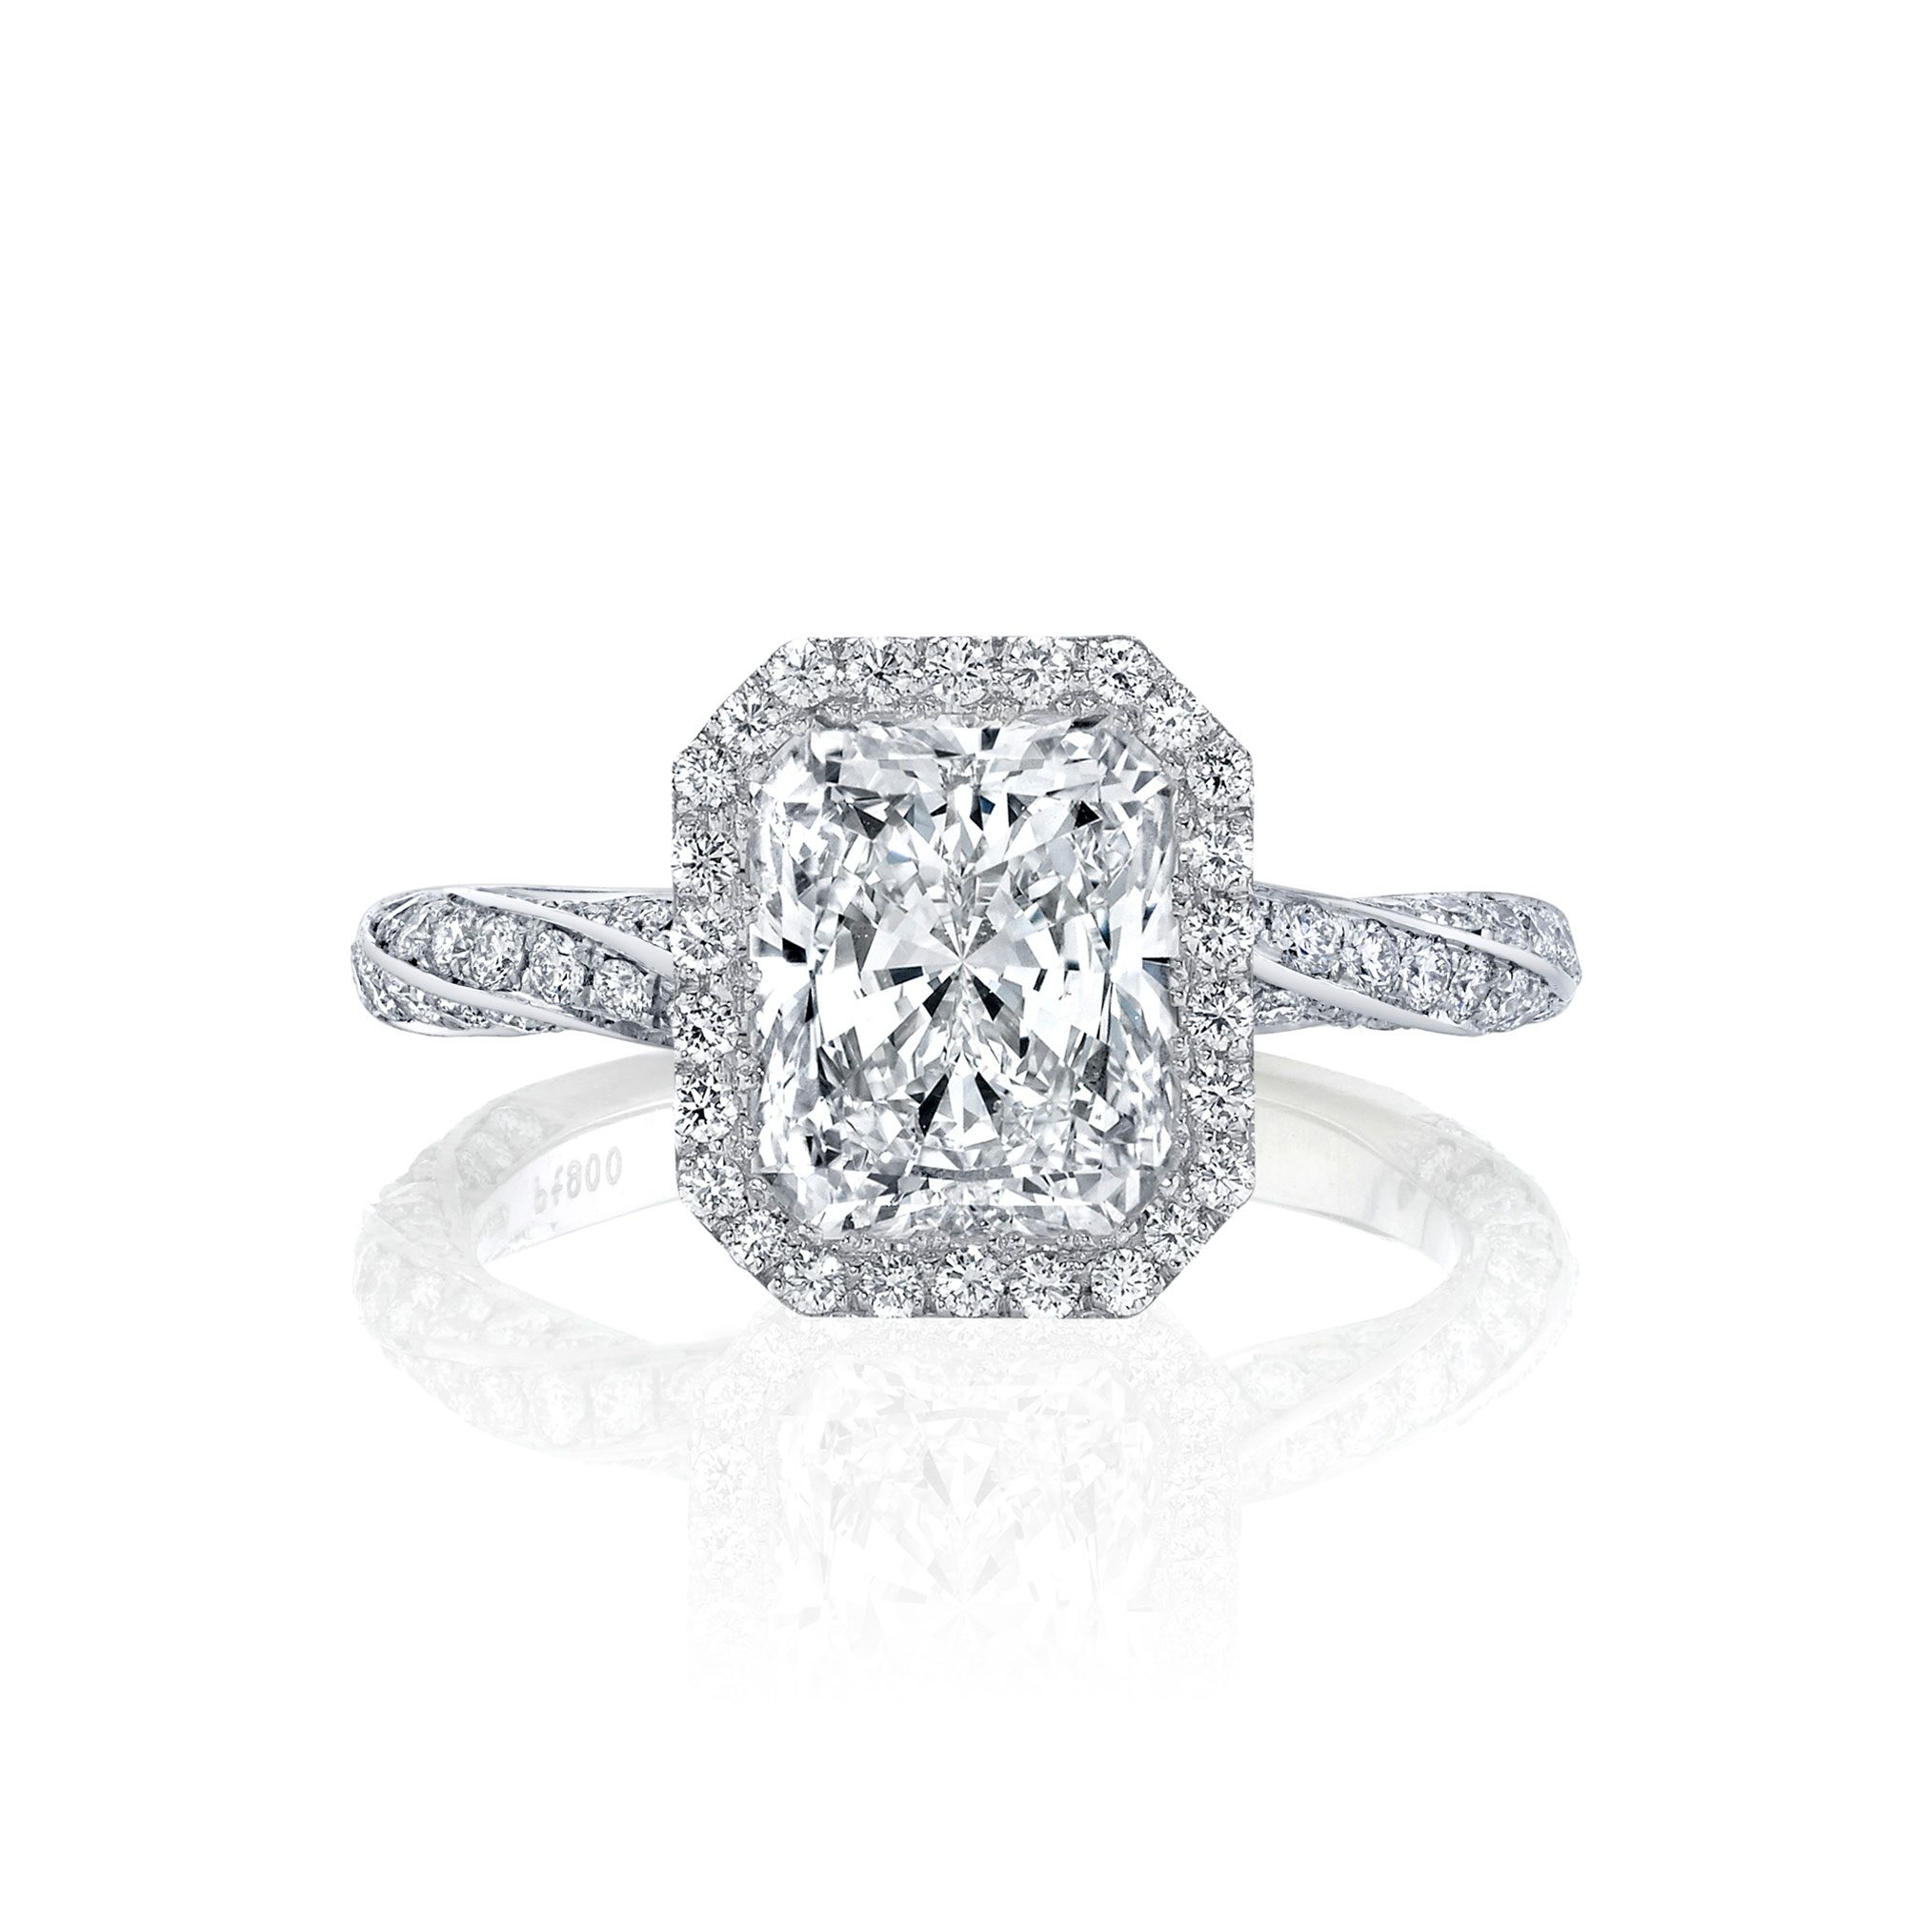 Camille Seamless Halo® Engagement Ring Radiant Cut with 18k white gold twisted pavé band